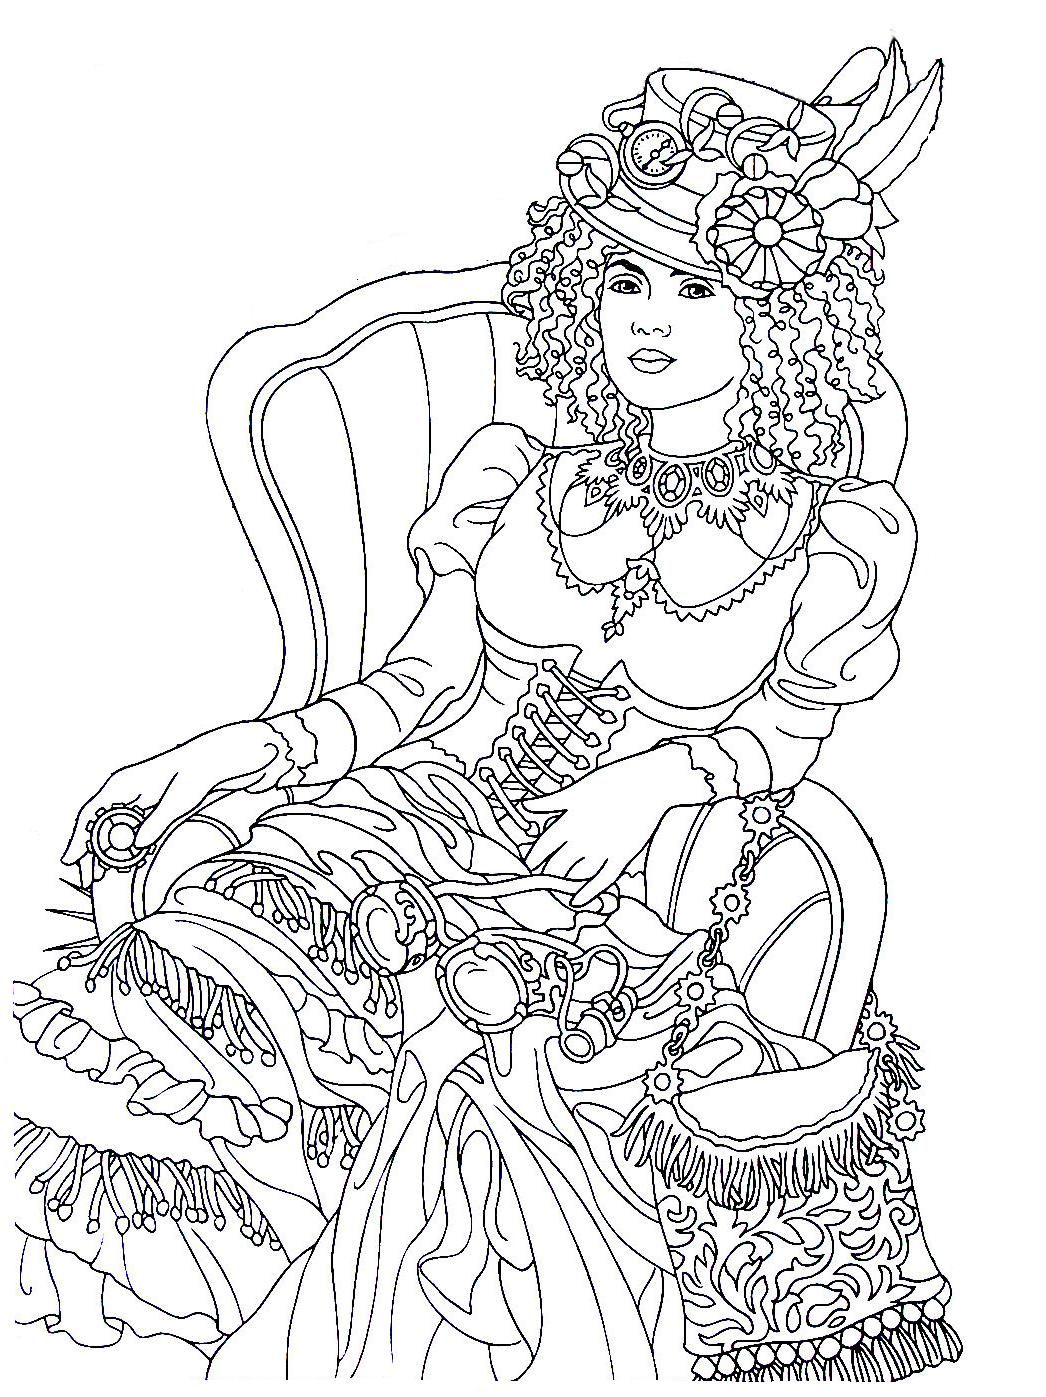 Steampunk Printable Coloring Book Page Easy To Medium Difficulty Coloring Steampunk Coloring Coloring Books Designs Coloring Books